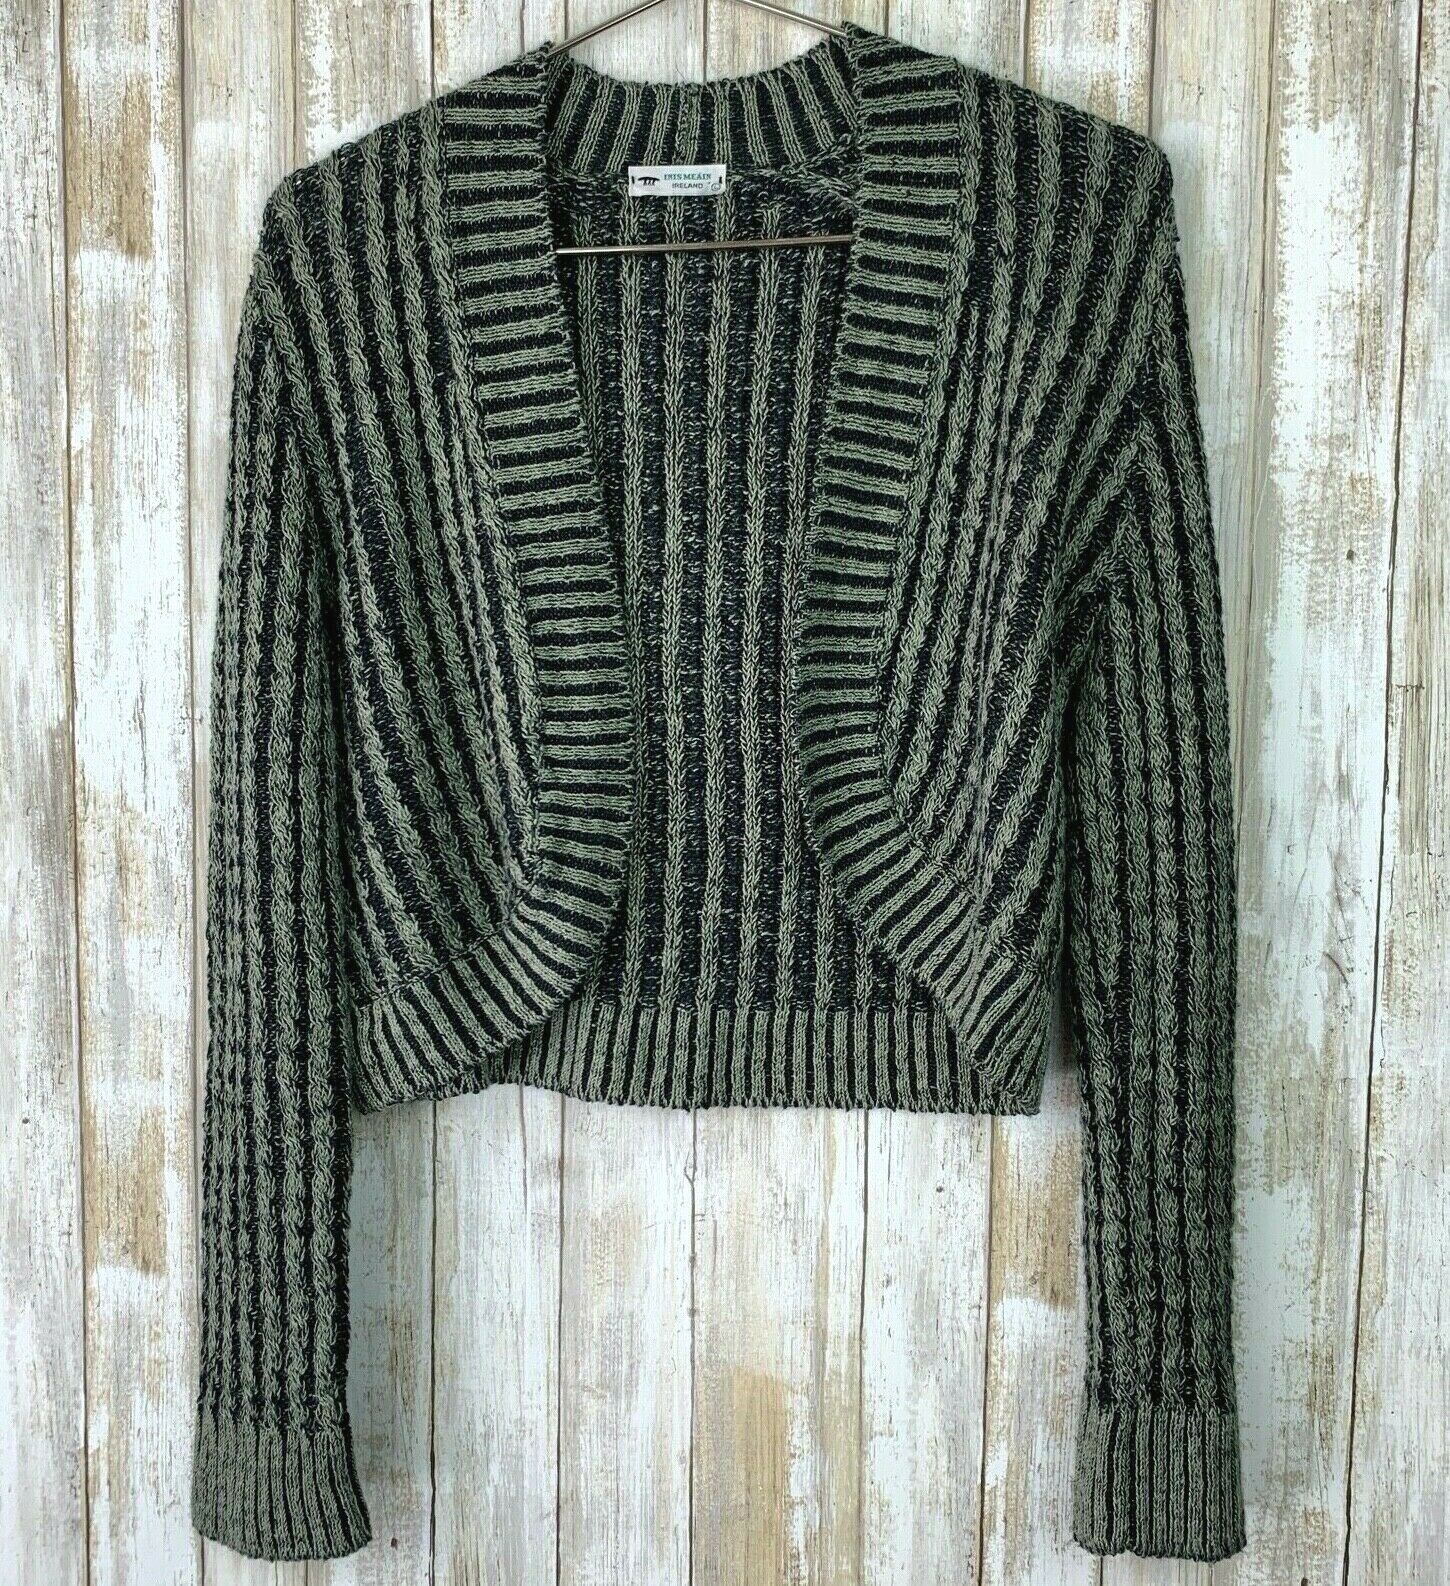 Inis Meain Linen Loose Knit Open Sweater Green Gr… - image 1